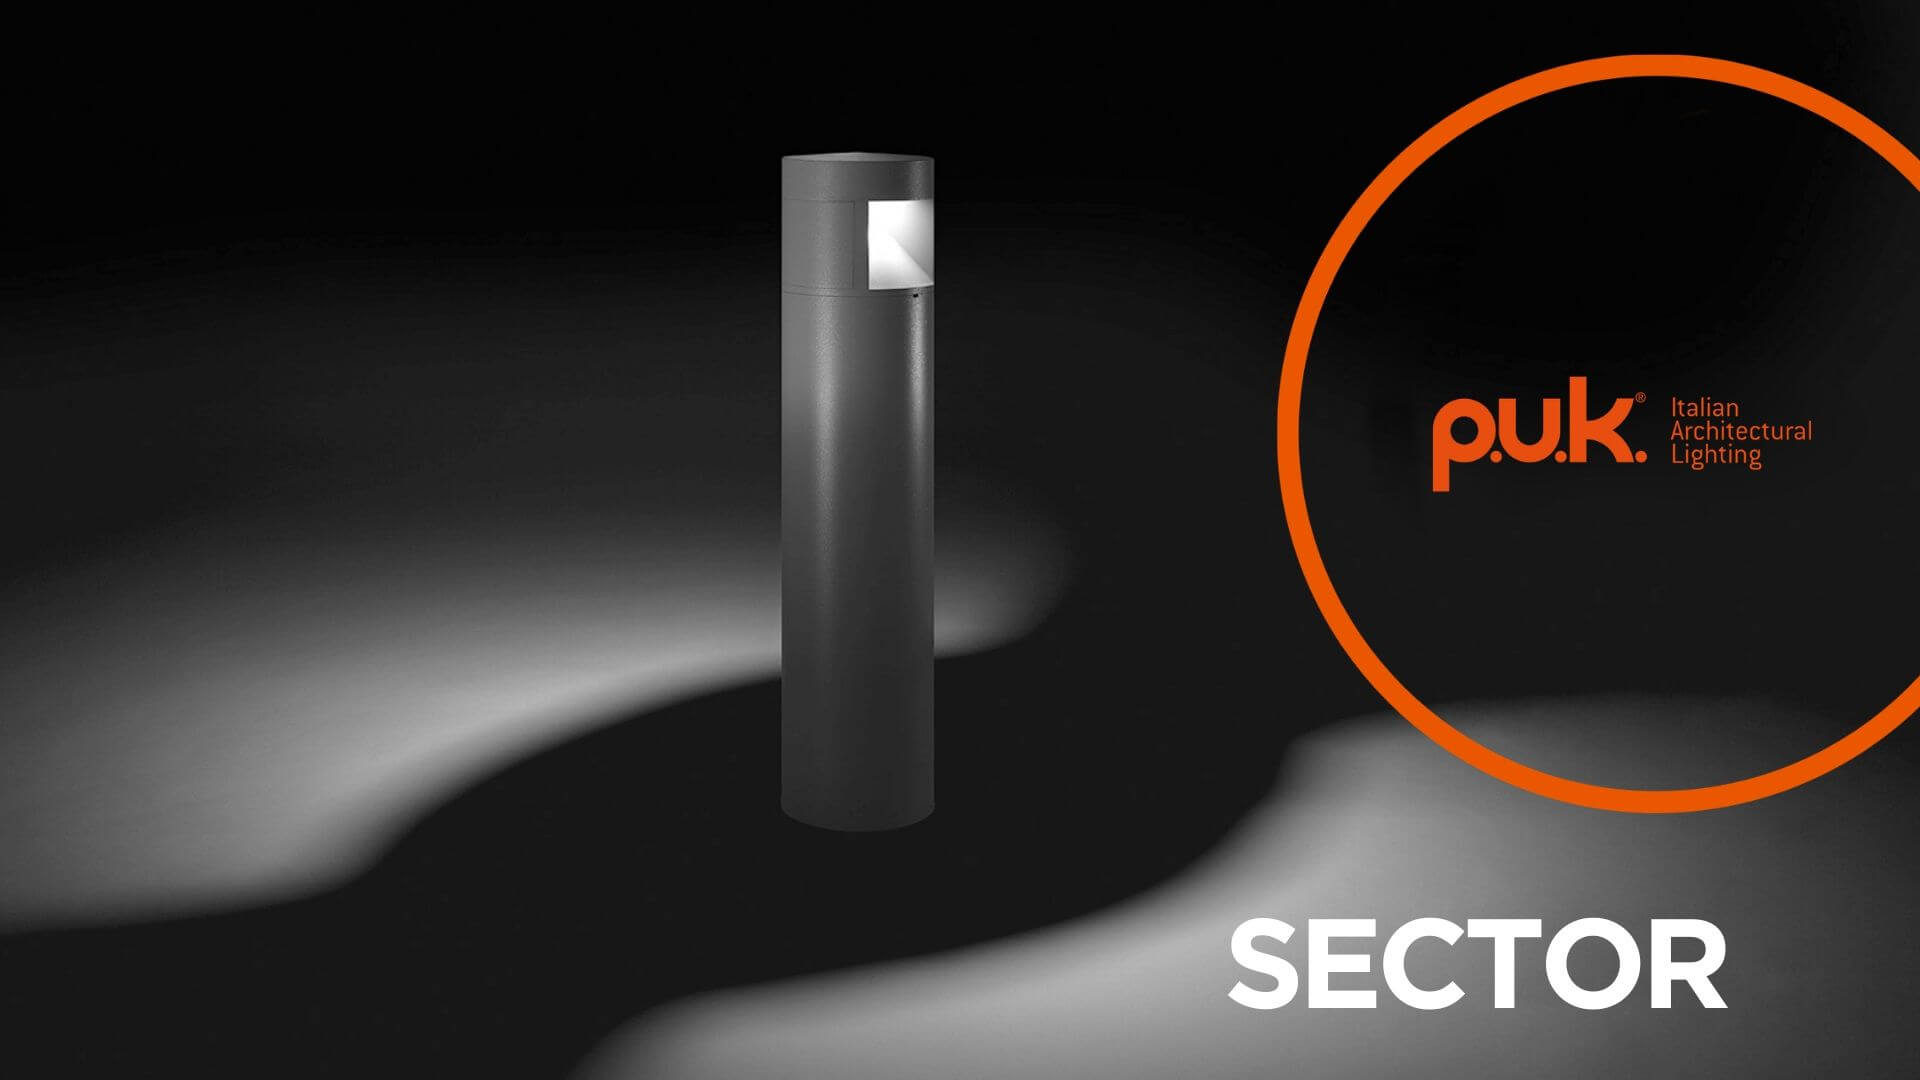 PUK bollards: meet Sector